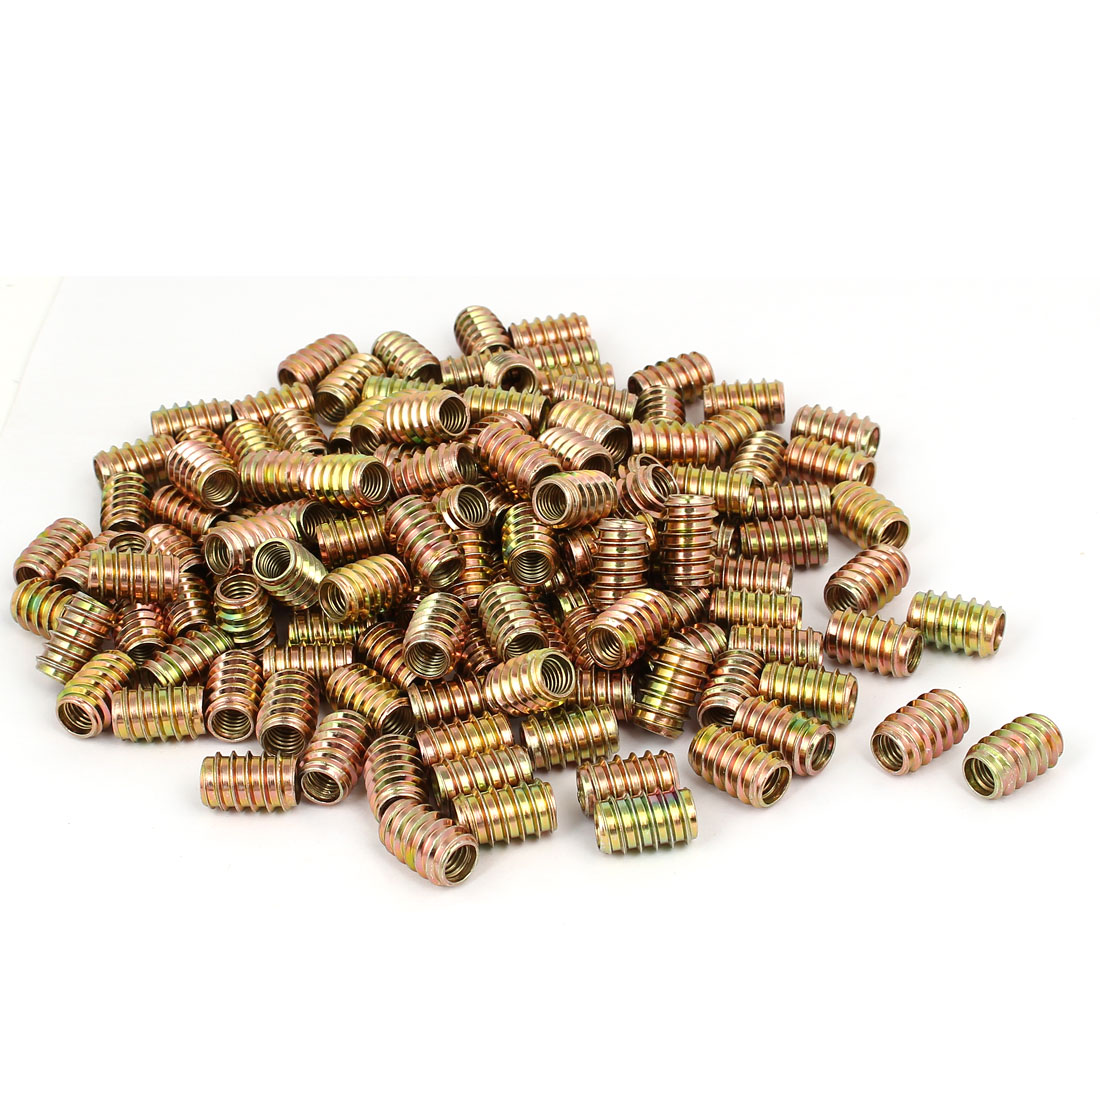 Wood Furniture Insert Fixing Screw E-Nut Bronze Tone M8 x 20mm 250pcs